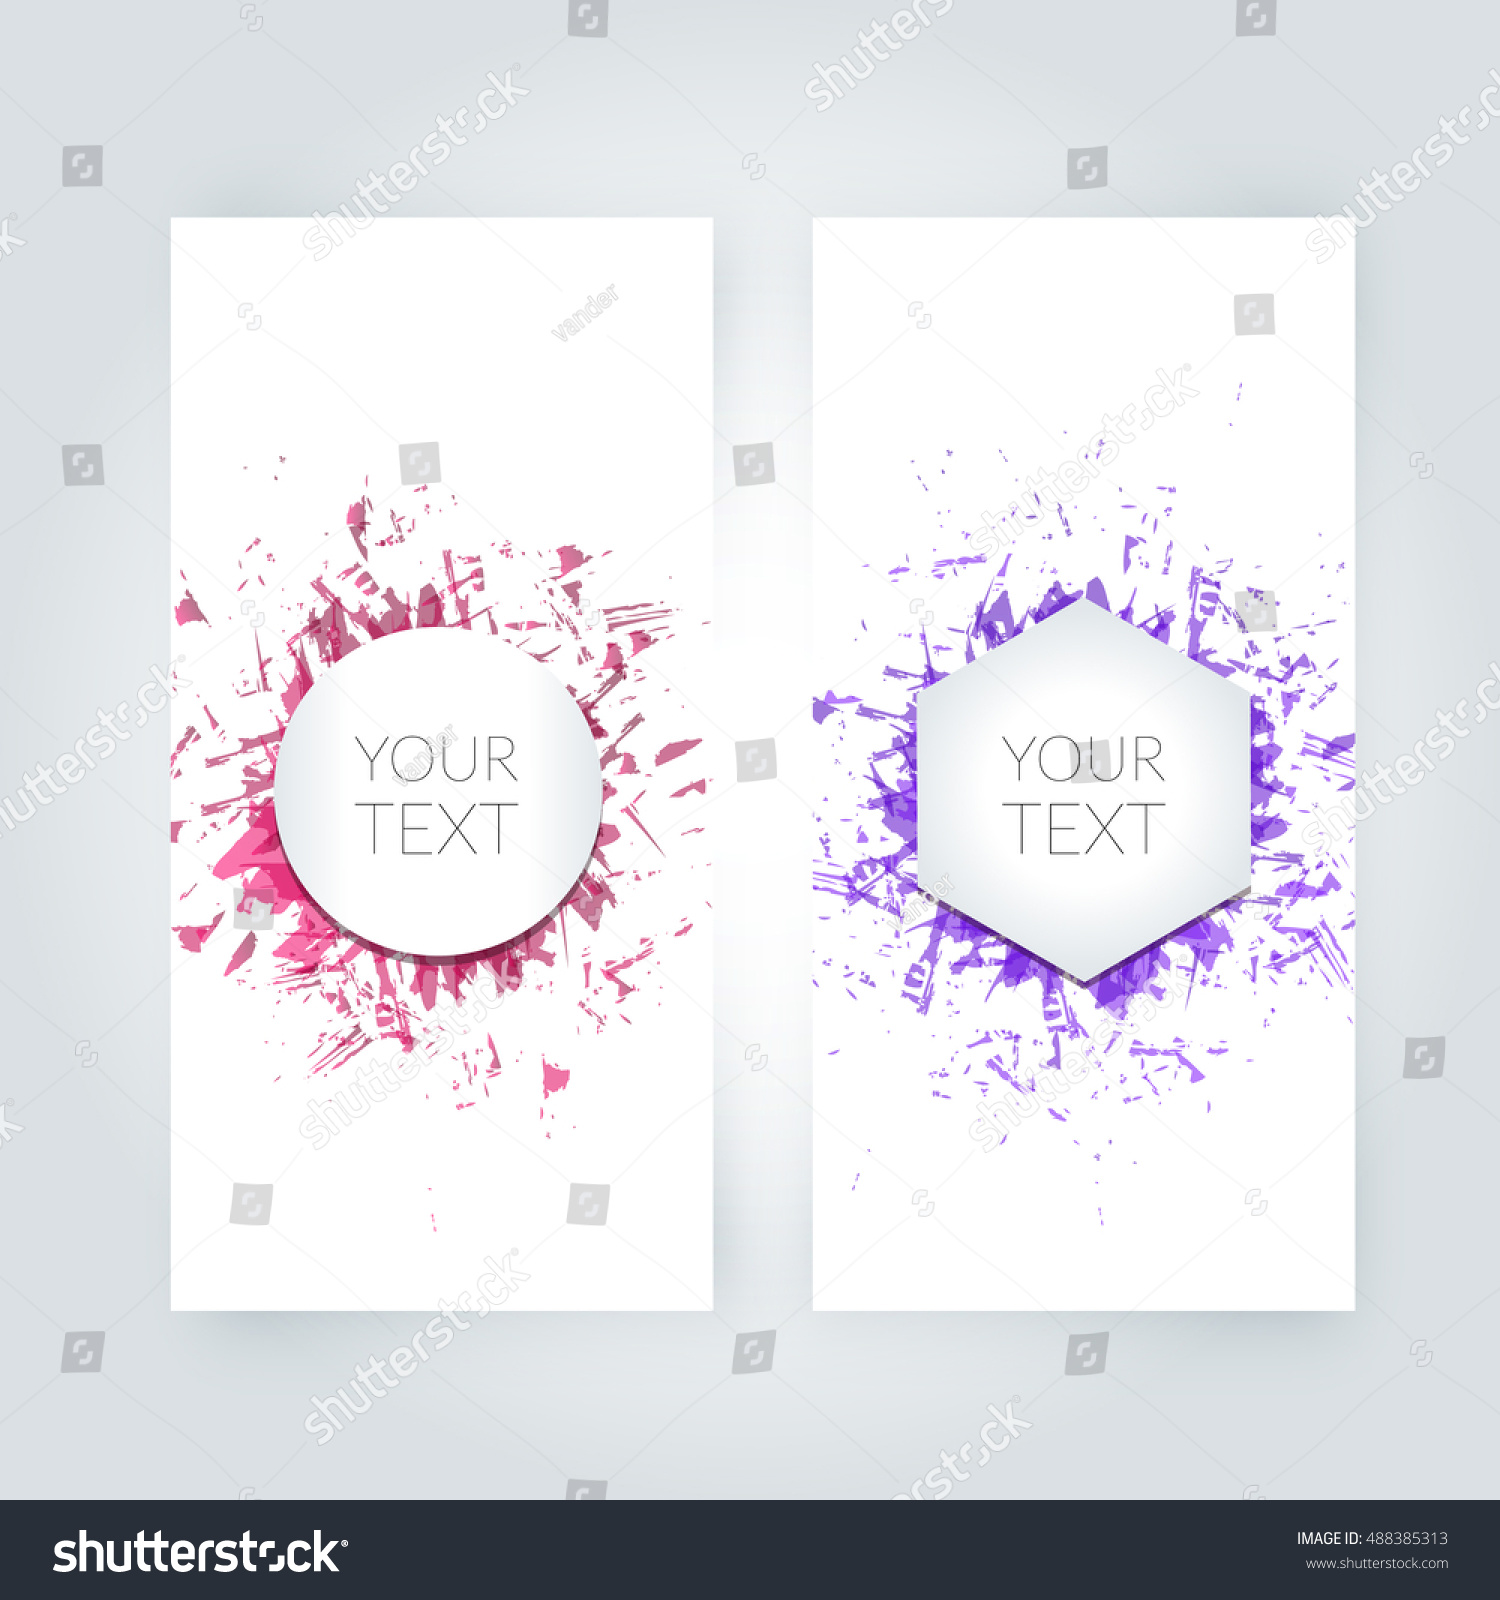 design templates vectors vector artwork wwwresume formatcom stock vector abstract paint splashes set for design use - Wwwresume Formatcom